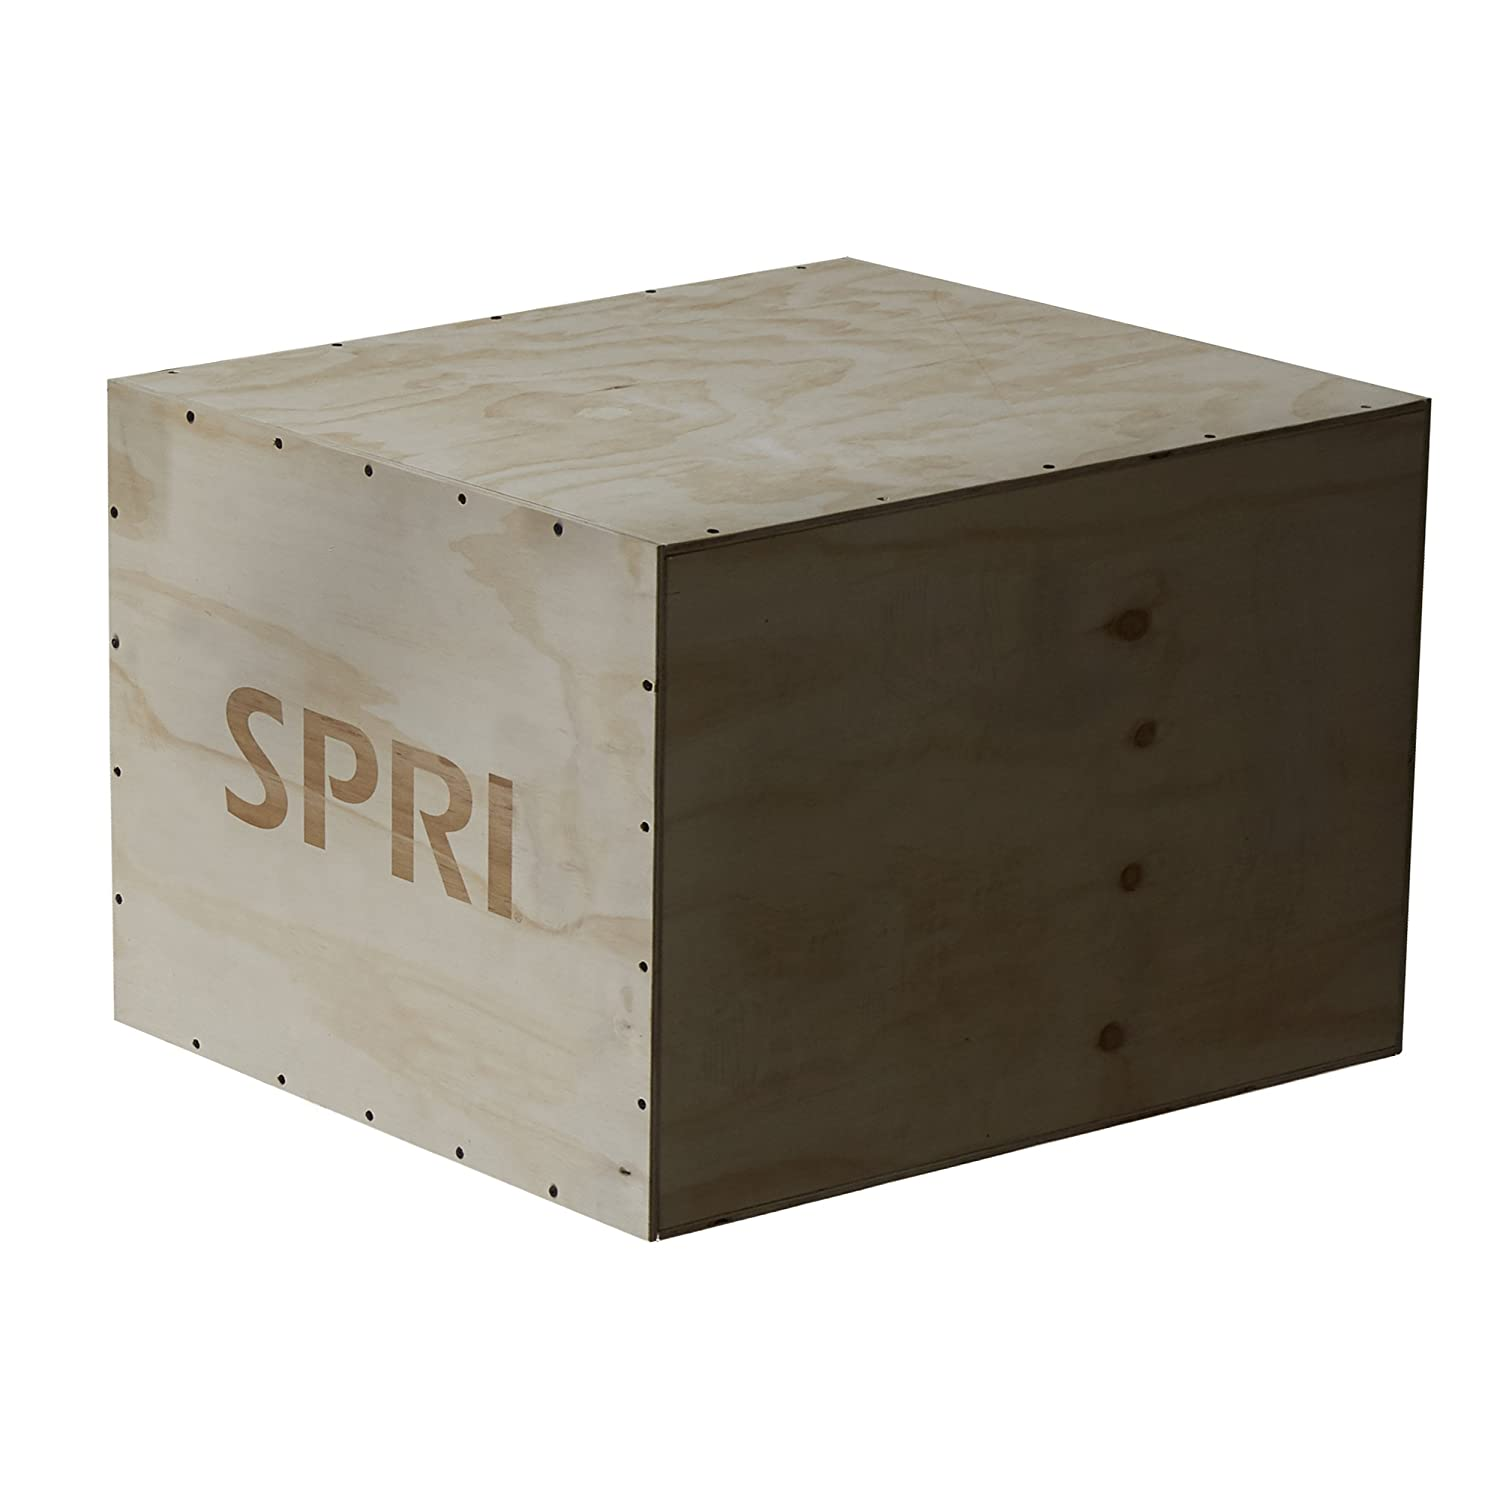 SPRI Wooden Plyo Box